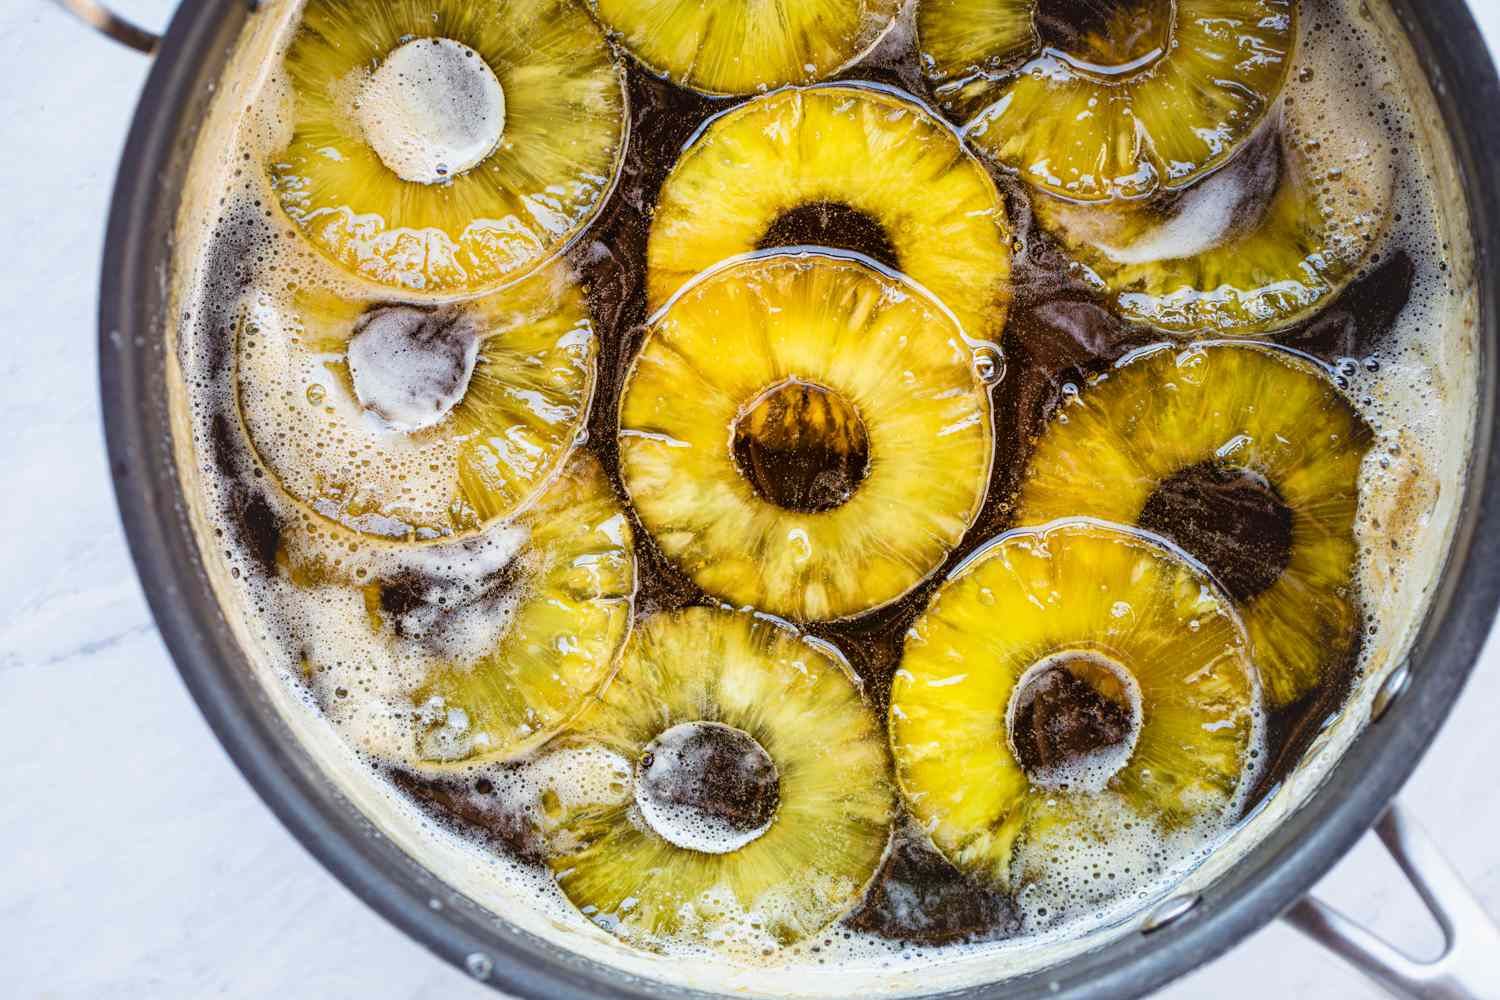 Boil the pineapple in the sugar syrup